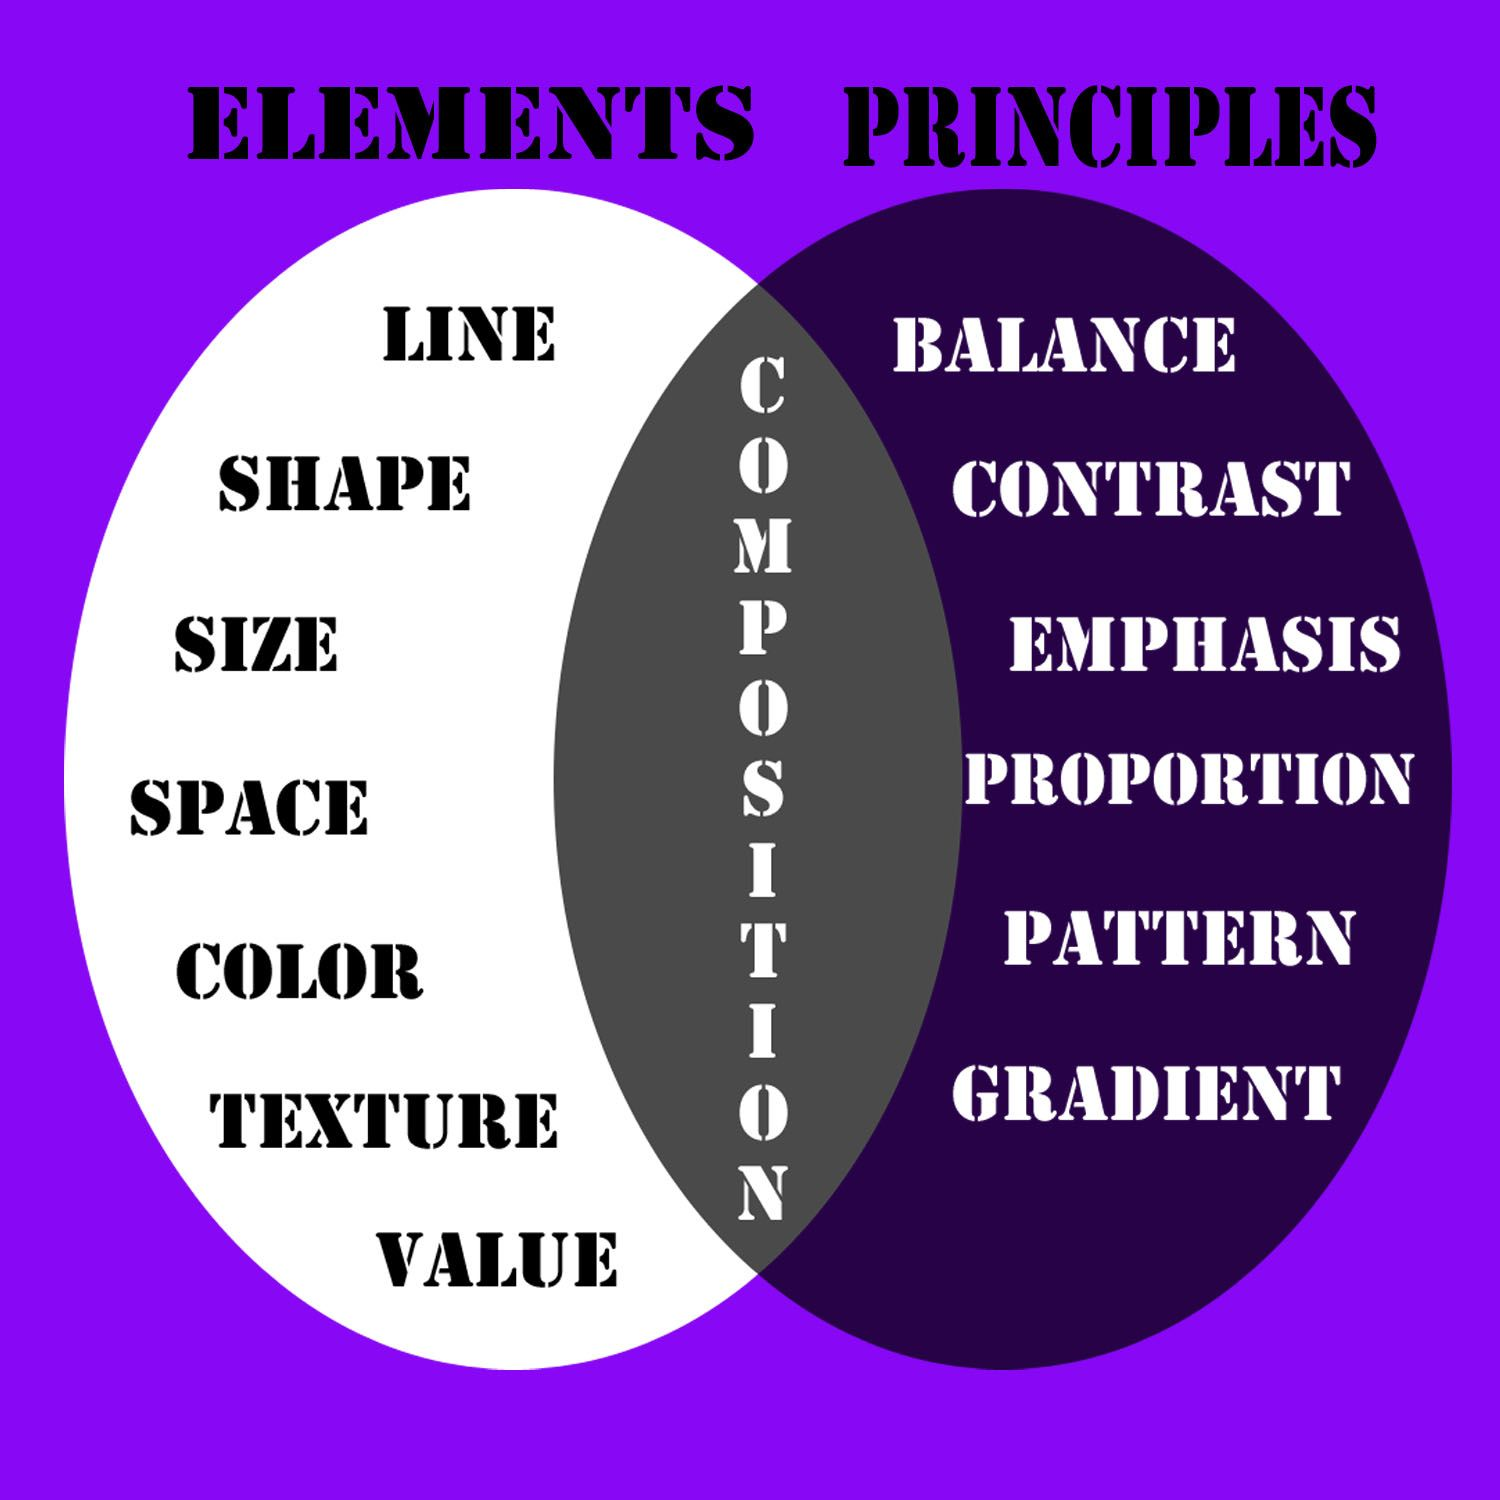 Elements And Principles Of Design Principles Of Design Elements And Principles Principals Of Design